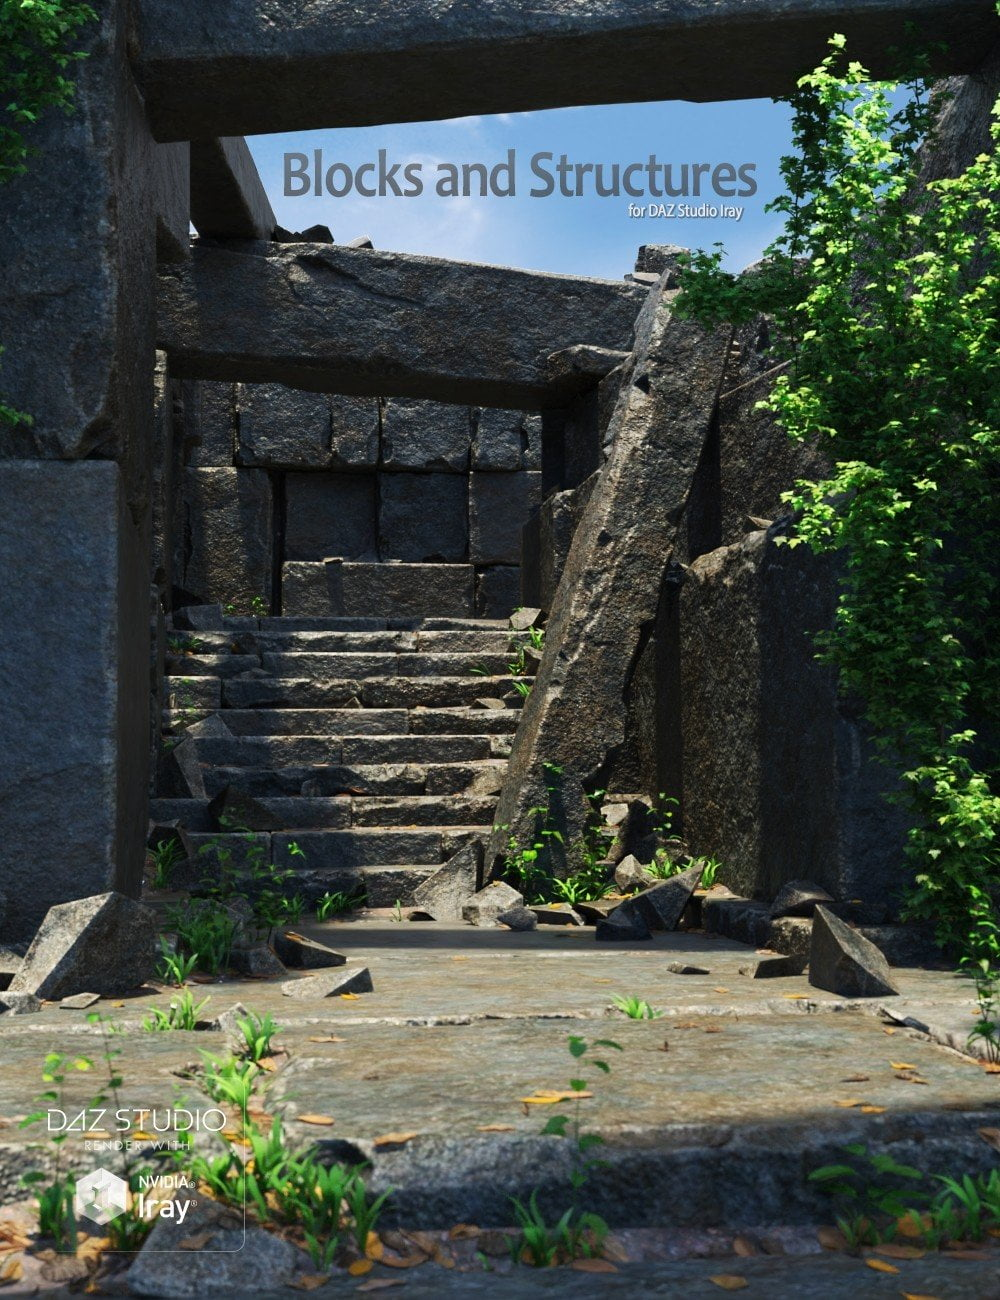 Blocks and Structures